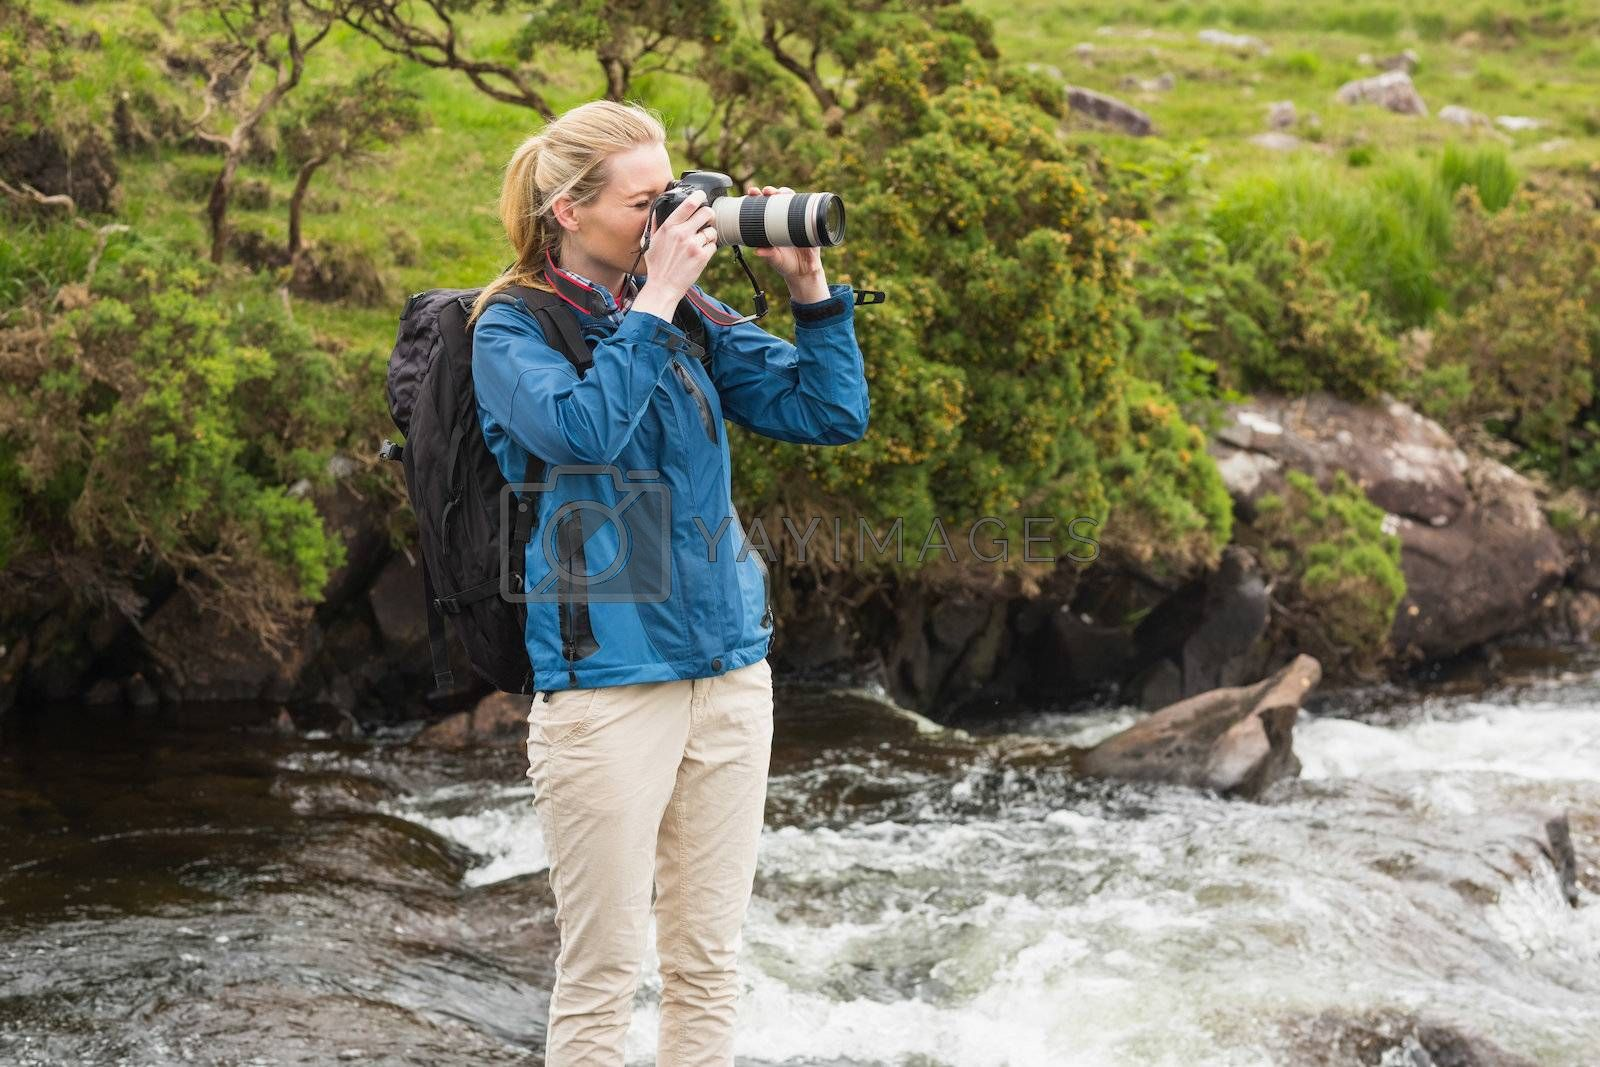 Blonde standing on rock in a stream taking a photo by Wavebreakmedia